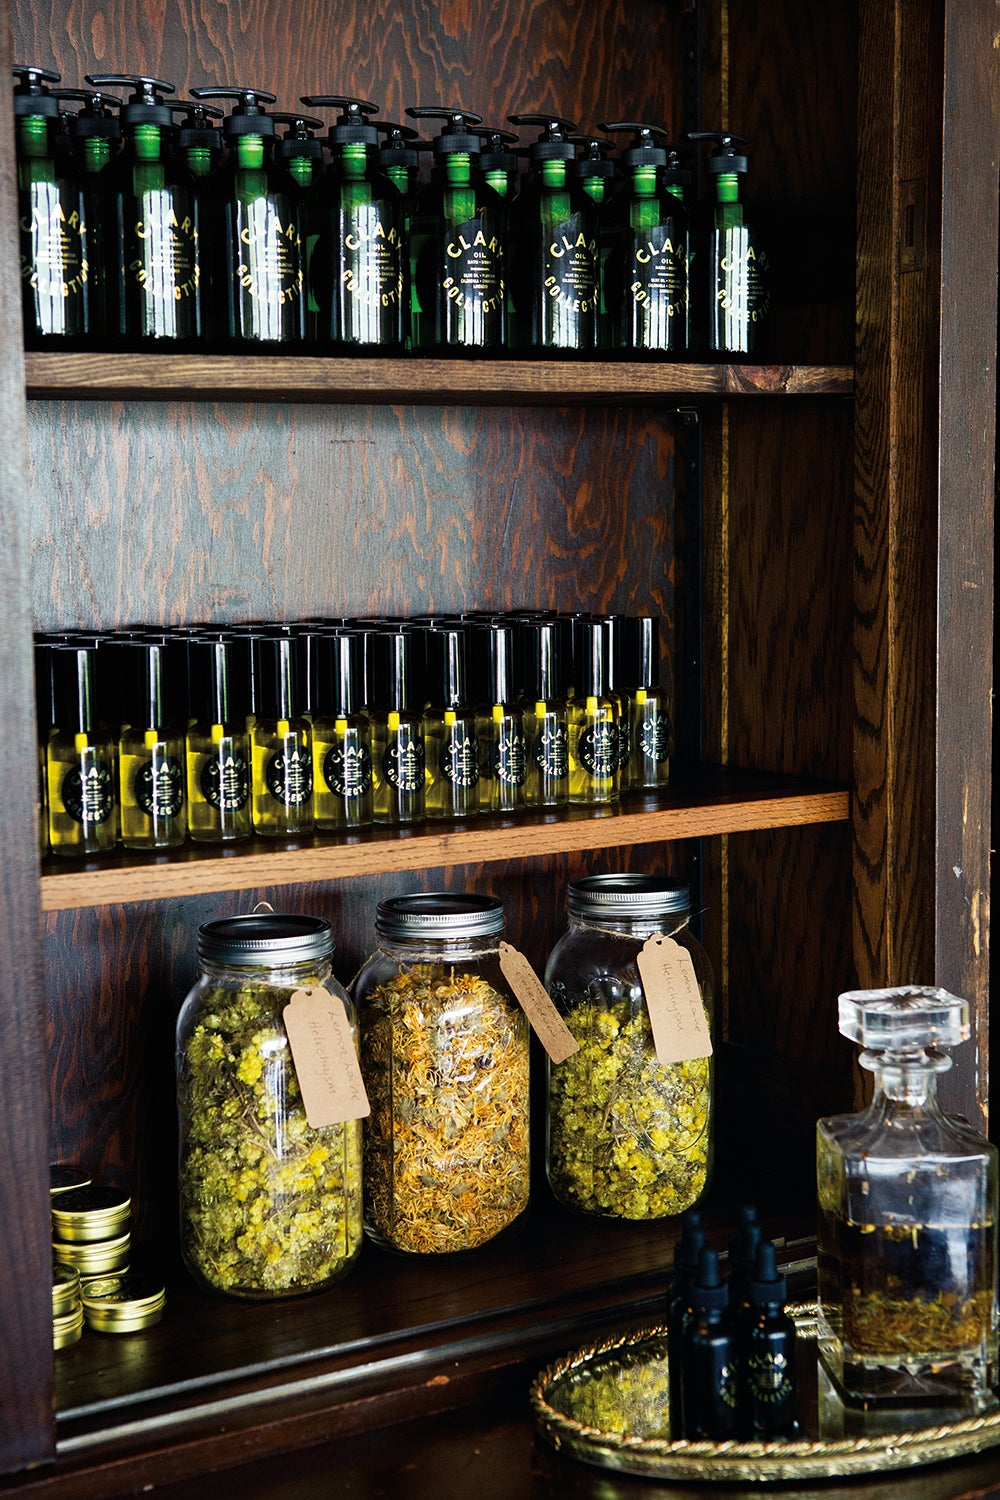 jarred spices in glass containters